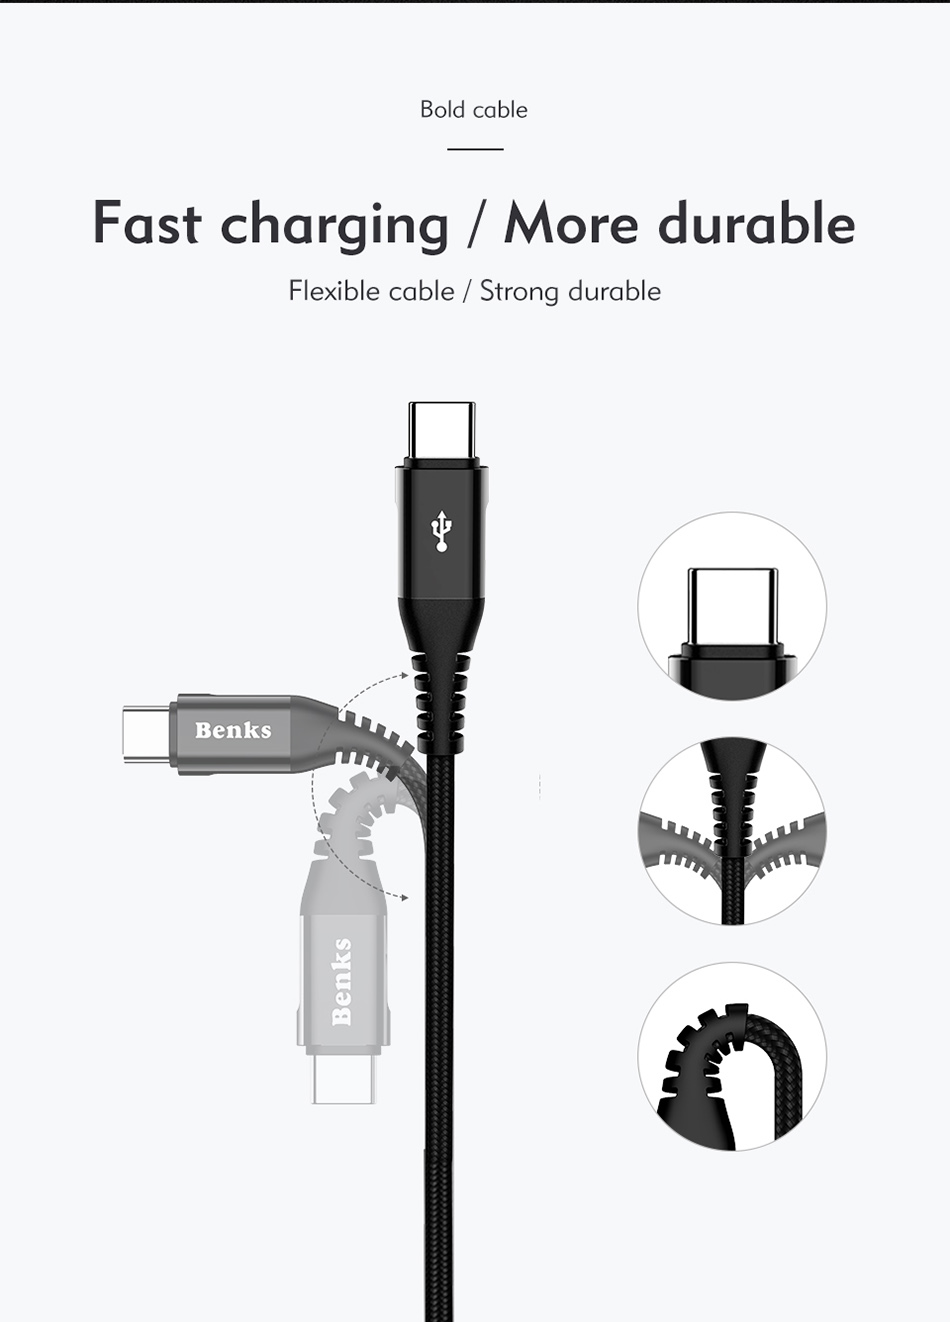 Benks Nylon USB Type C Fast Charging Cable For Samsung S8 S9 Huawei P10 P9 Plus Xiaomi 6 5 Android  Phone 5A Charger Cables 1 (7)